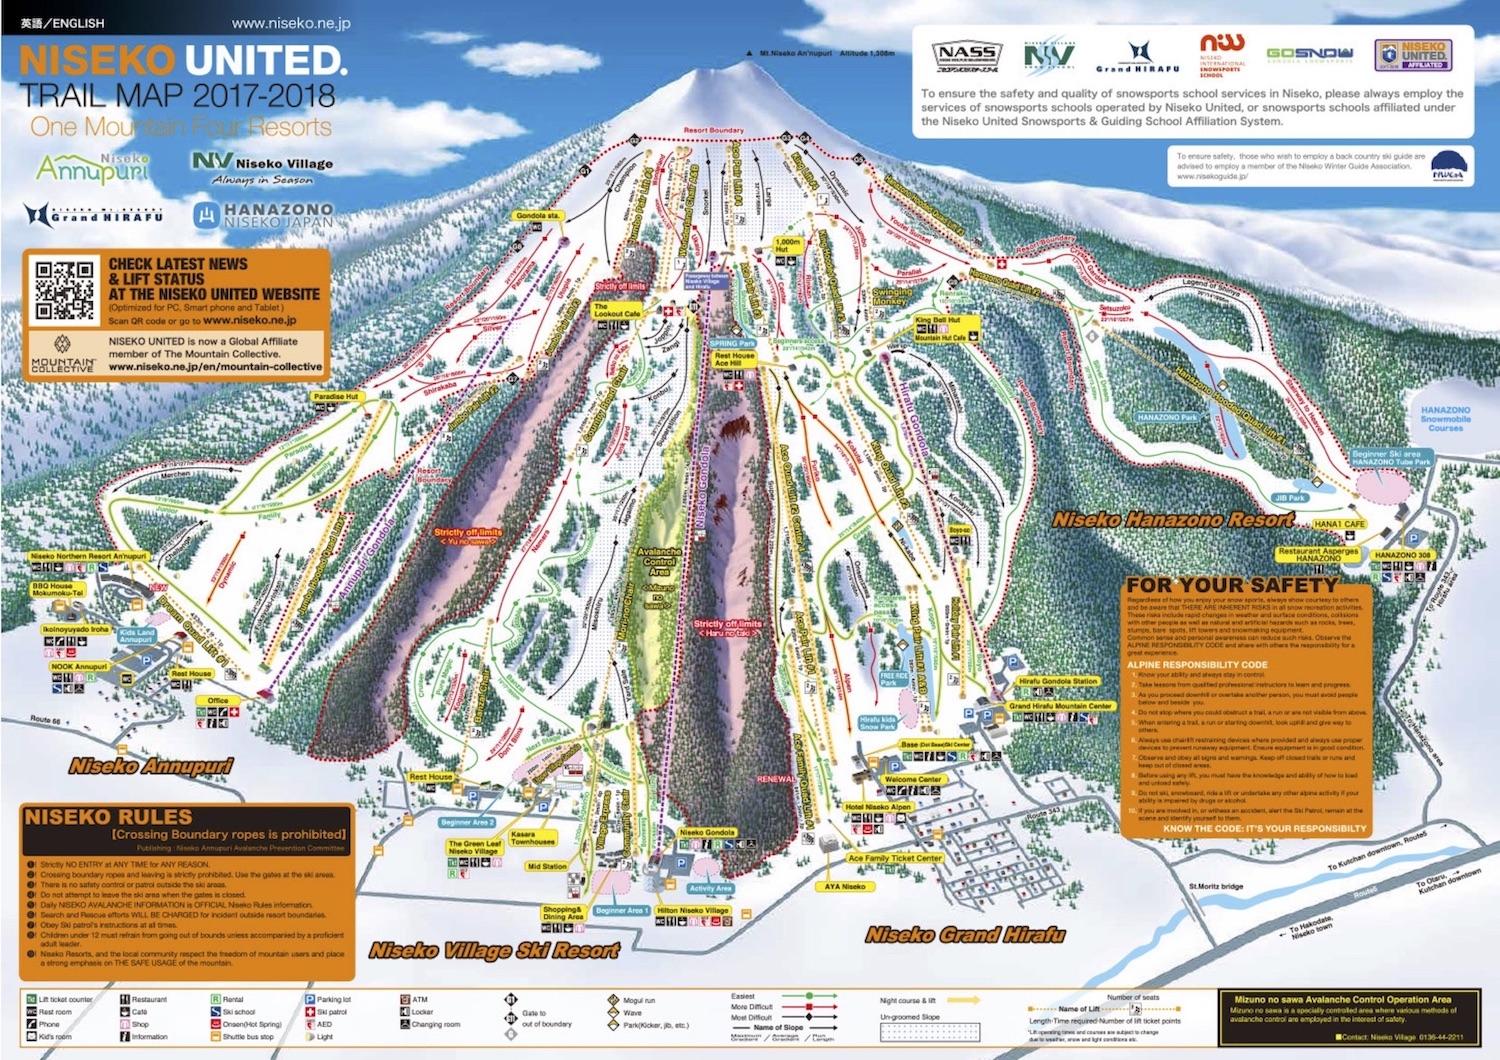 Niseko Hirafu Piste / Trail Map